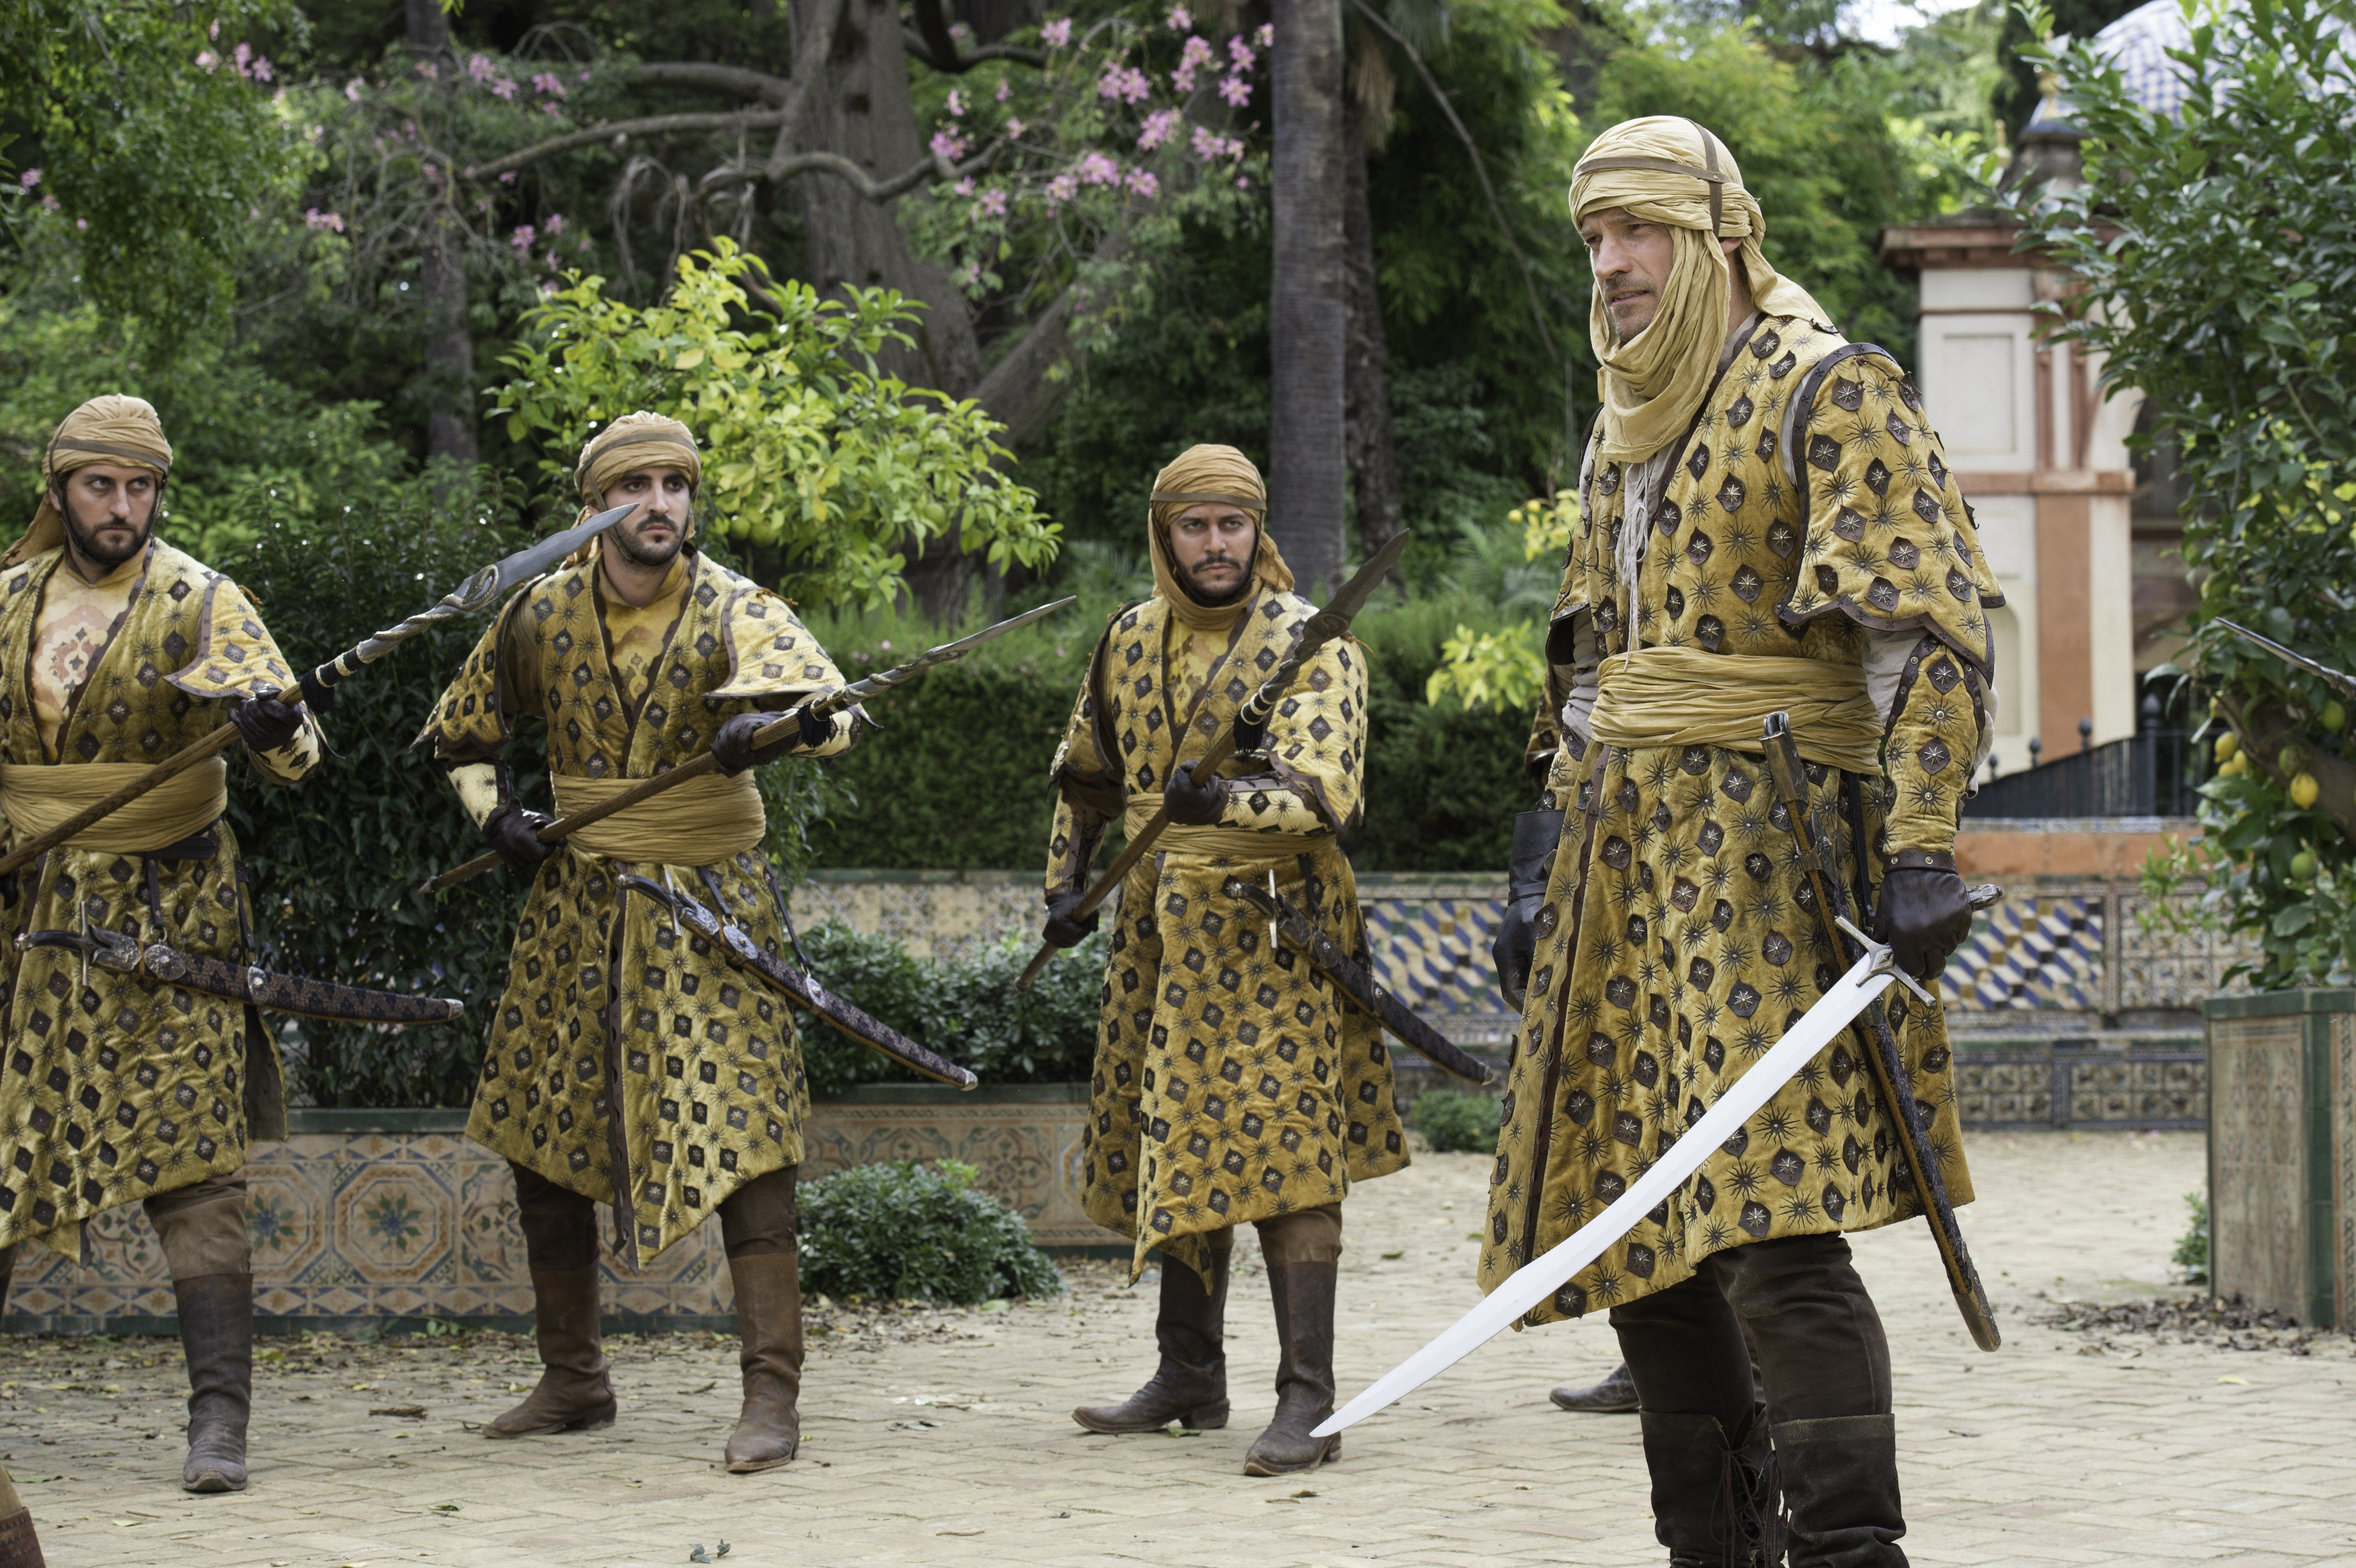 Game of Thrones Season 5 Episode 6 Game of thrones, Game